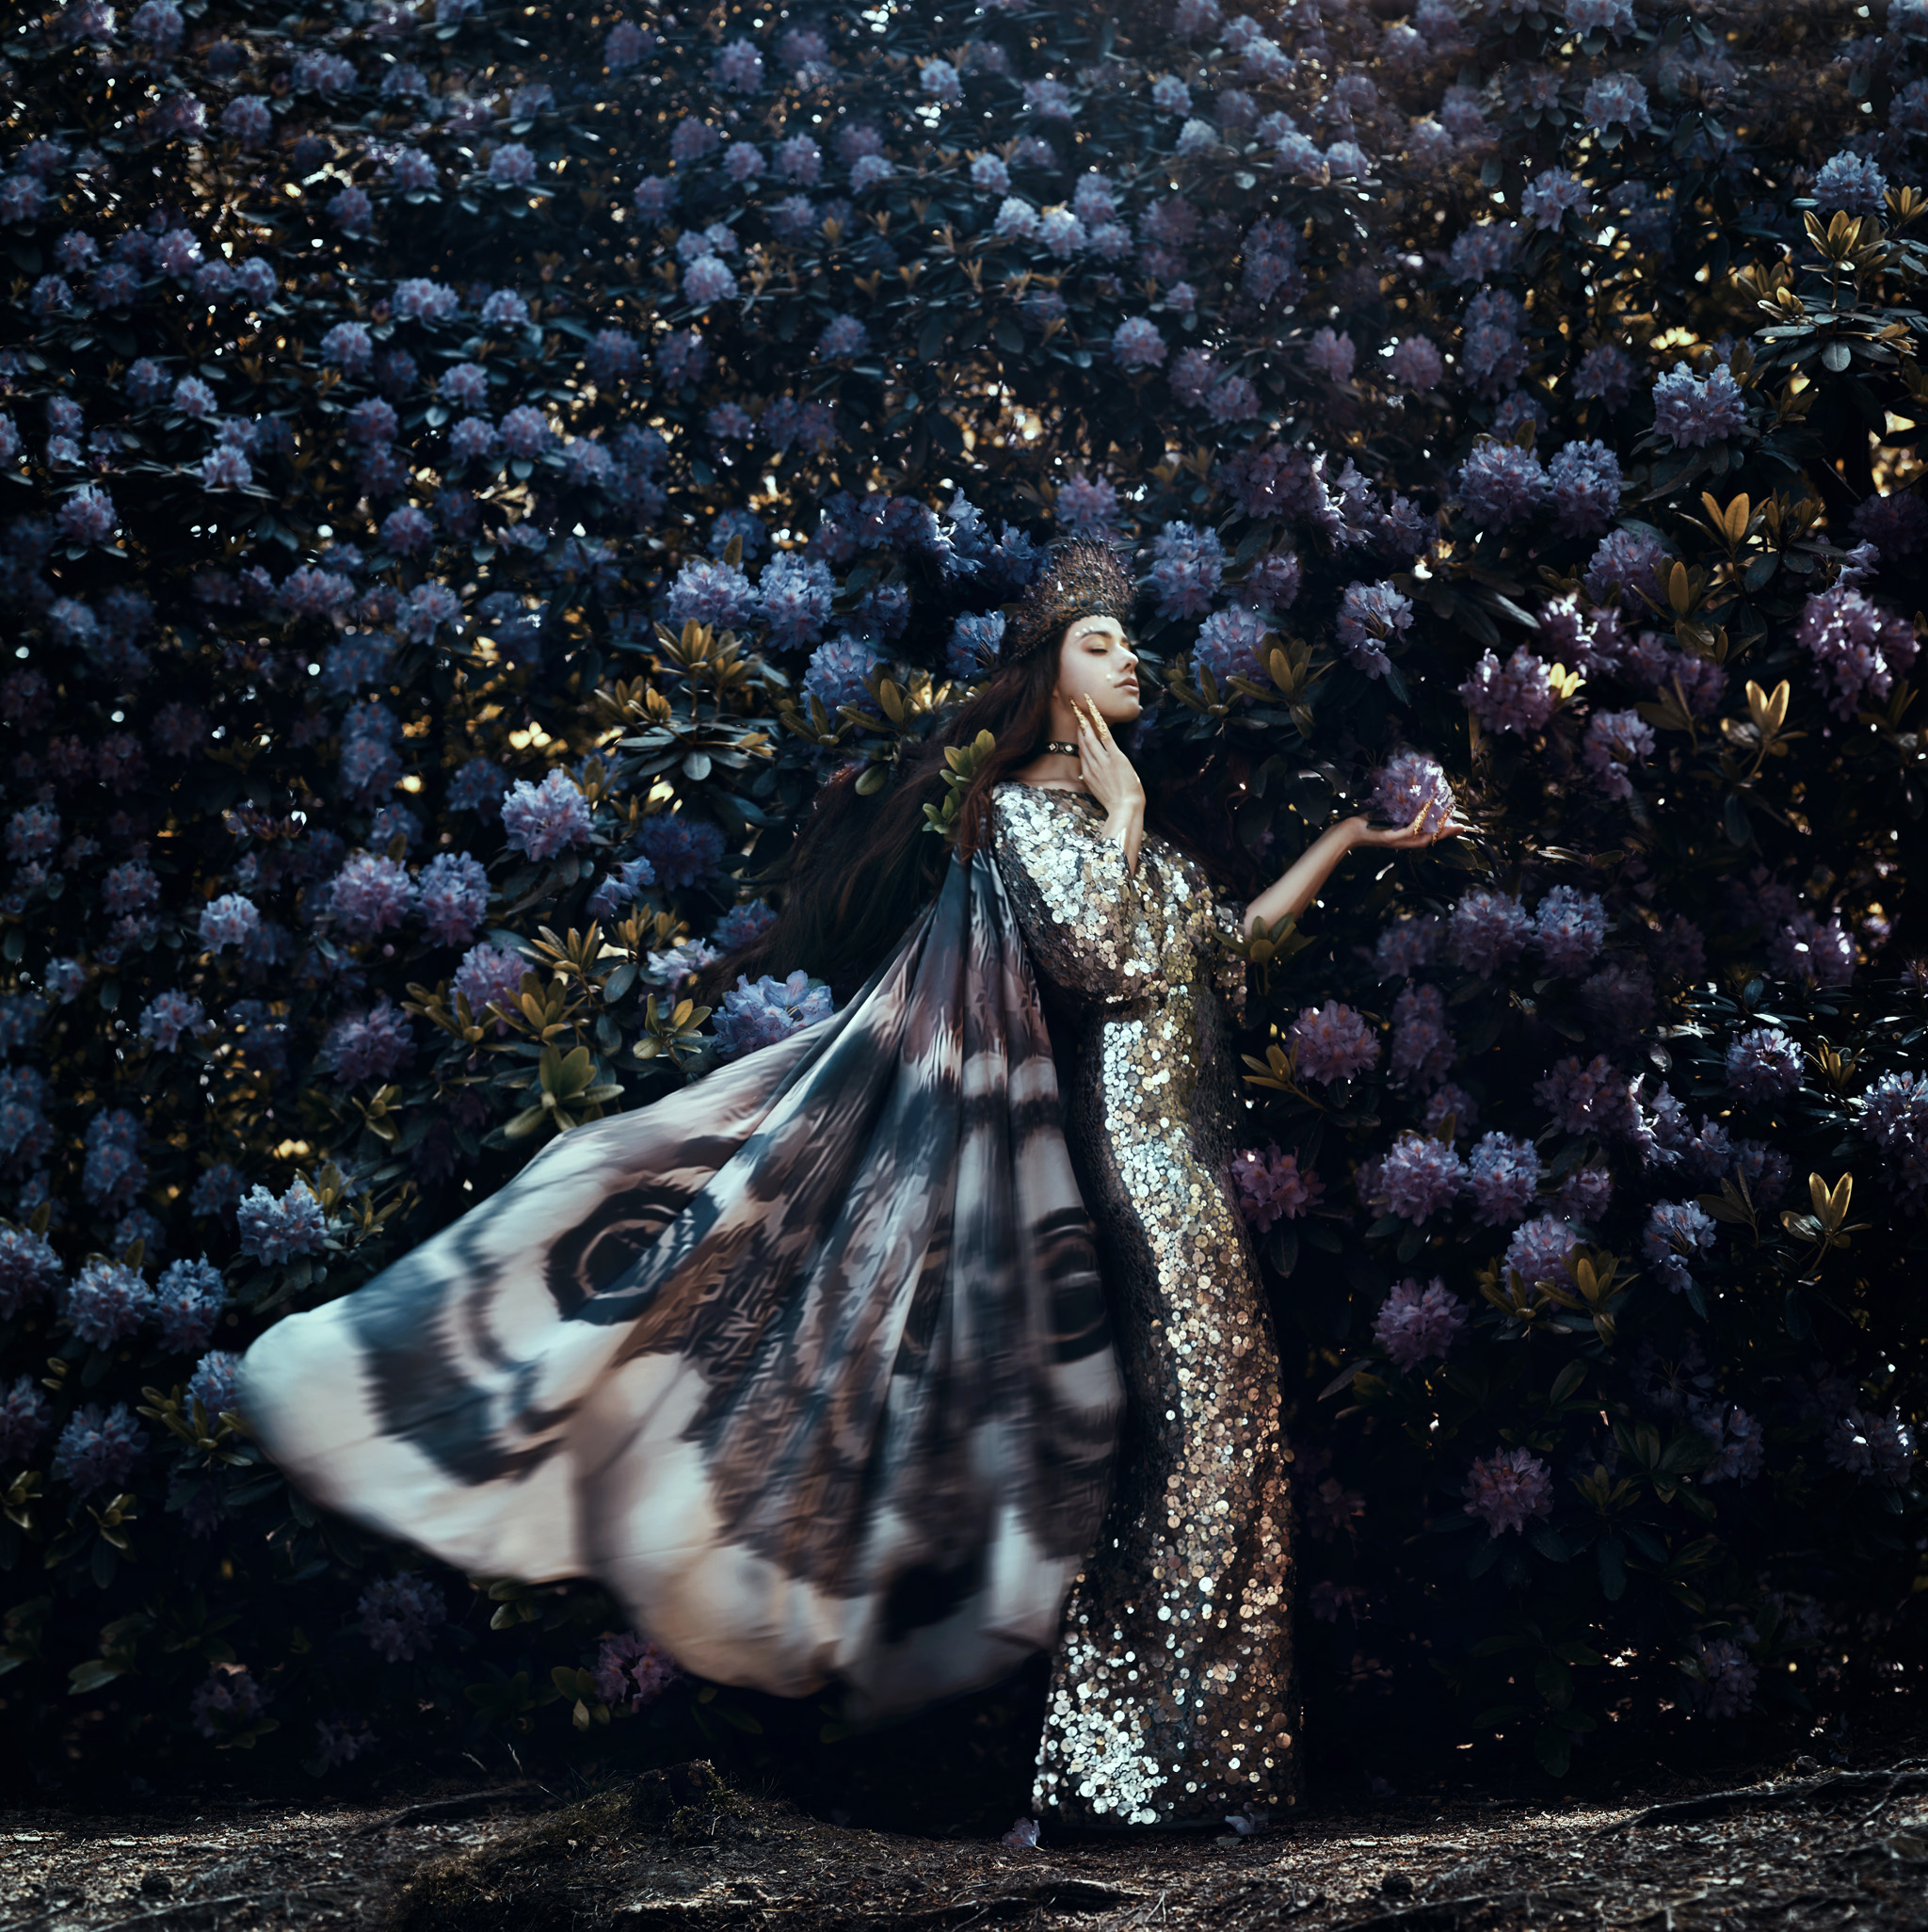 fairytale-bloom-moth-queen-royal-bella-kotak-rhododendron-magical-preraphelite-fantasy-photoshop-wings-fine-art-photography.jpg